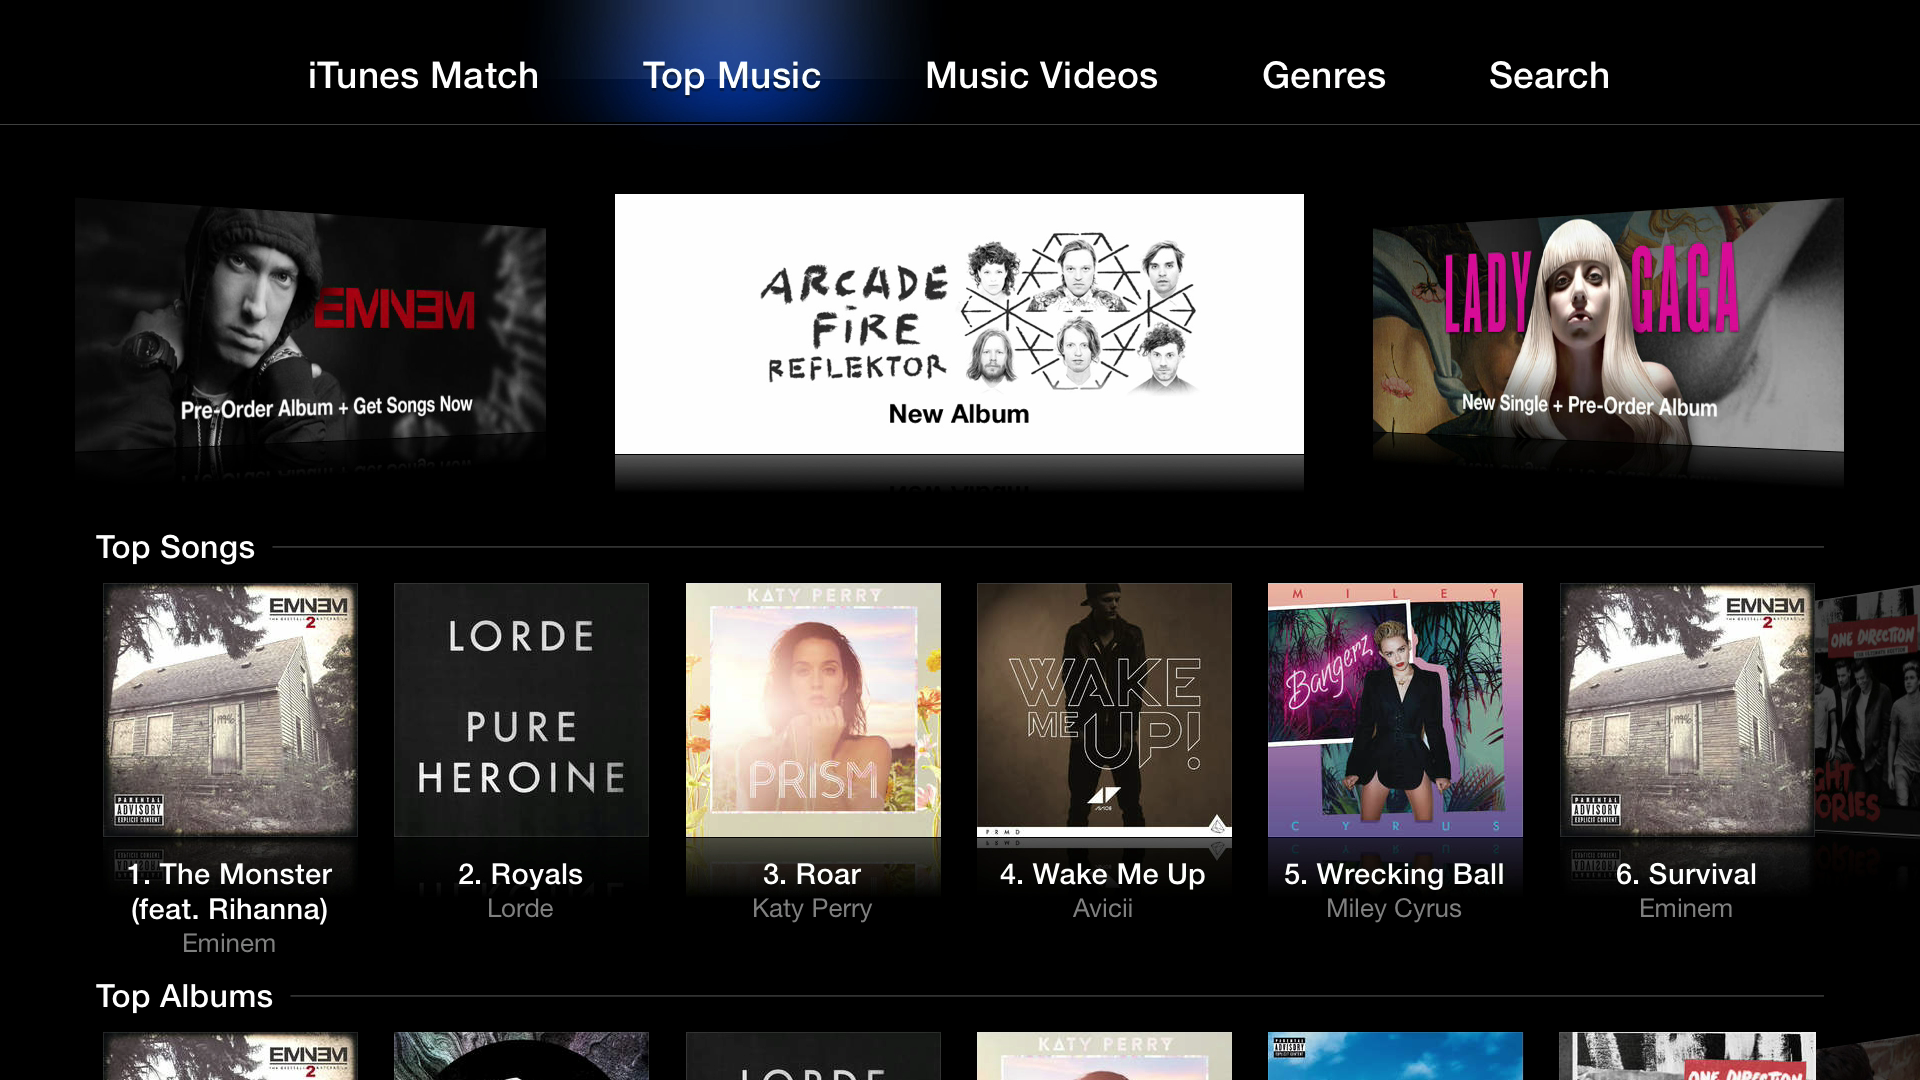 Figure 1: The Apple TV's Music app is your portal to the iTunes Store, purchased music, and iTunes Match.